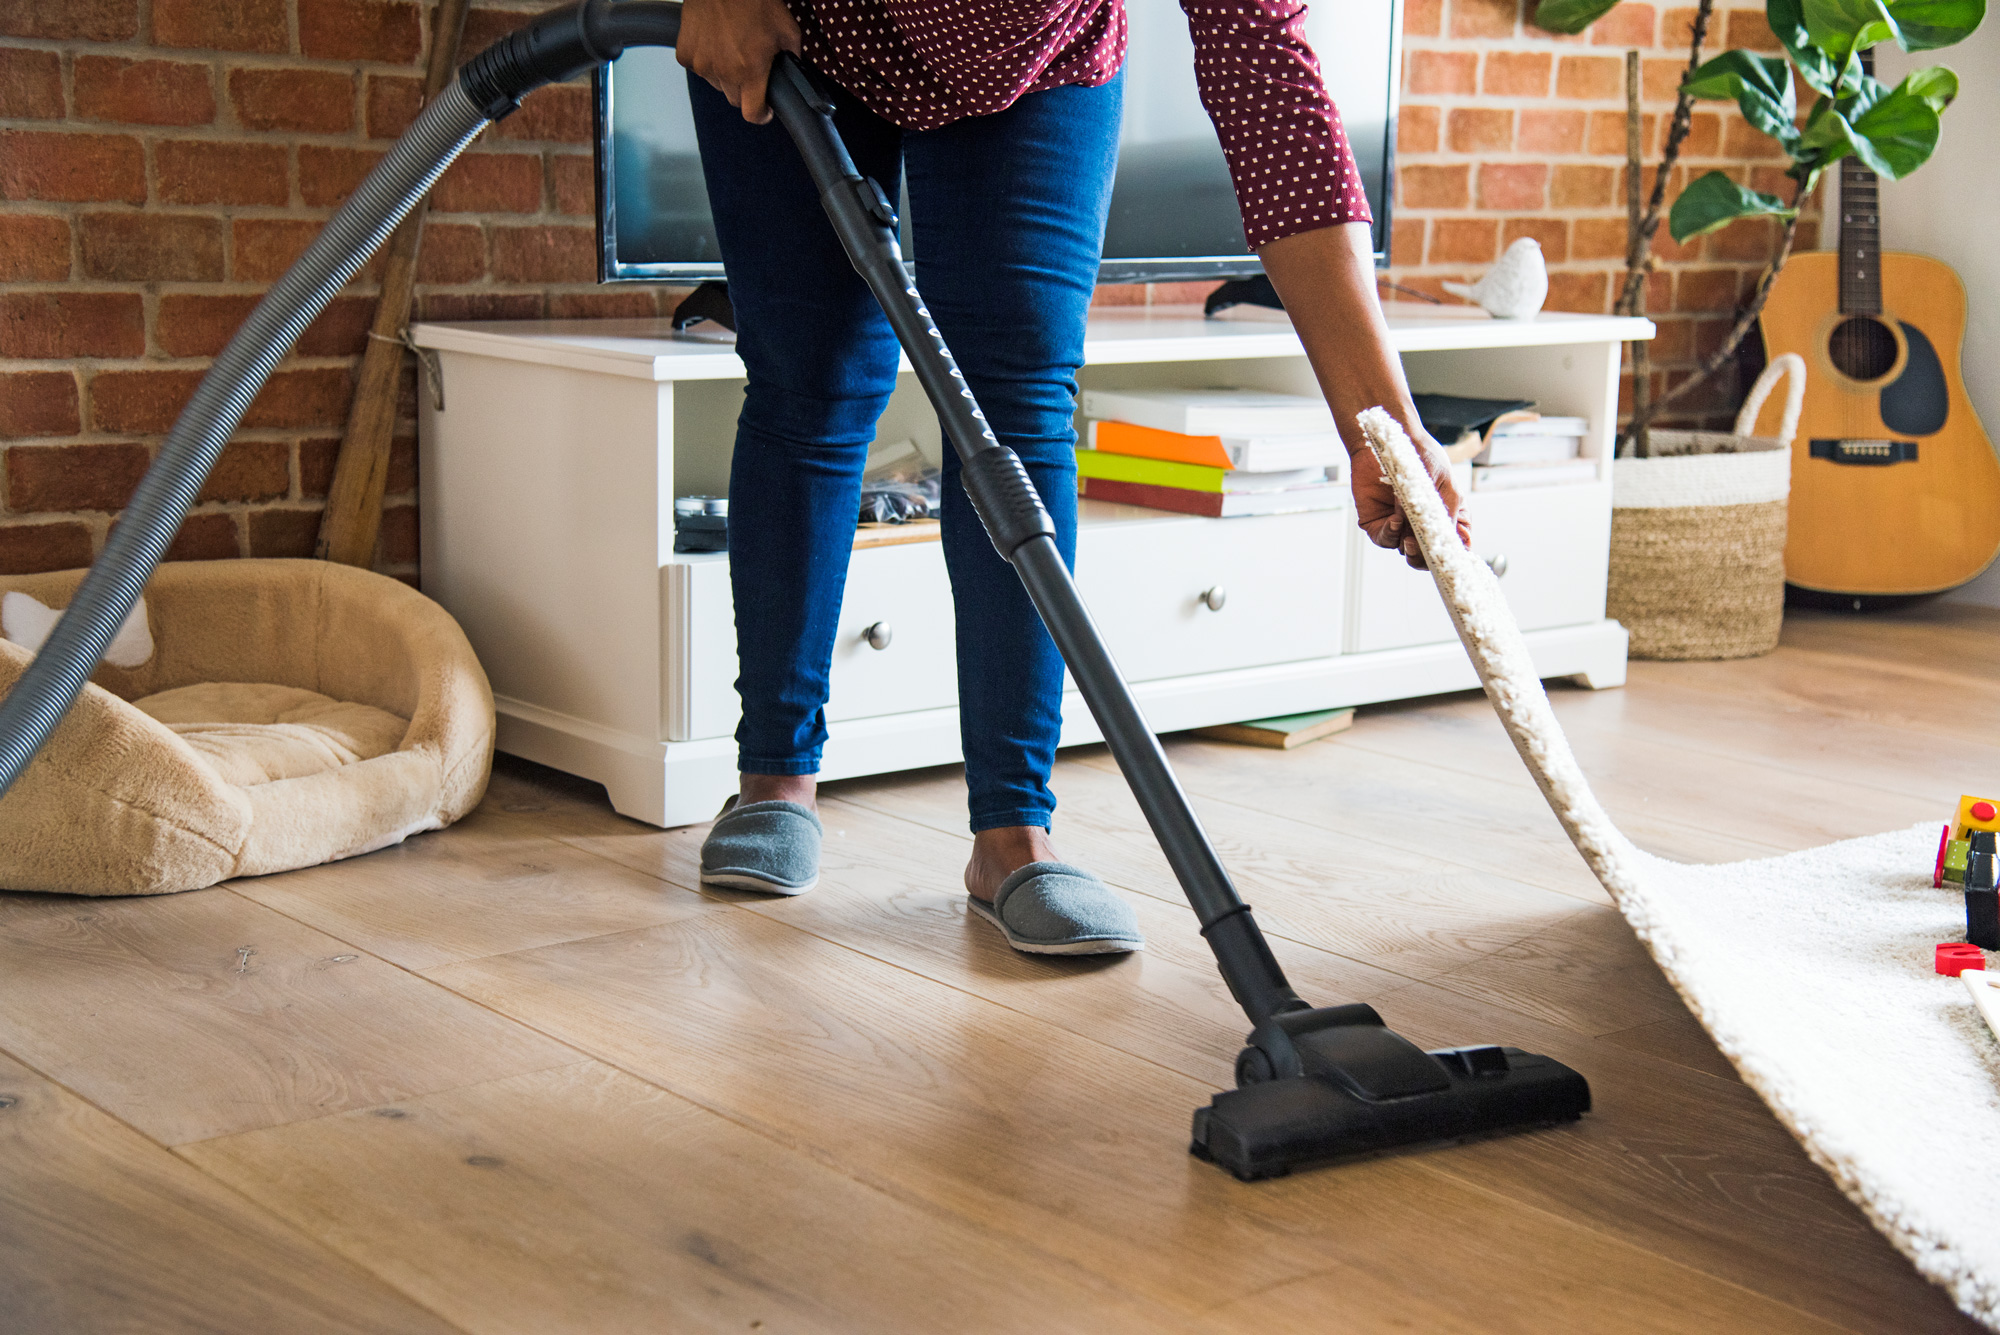 woman vacuuming hardwood under rug